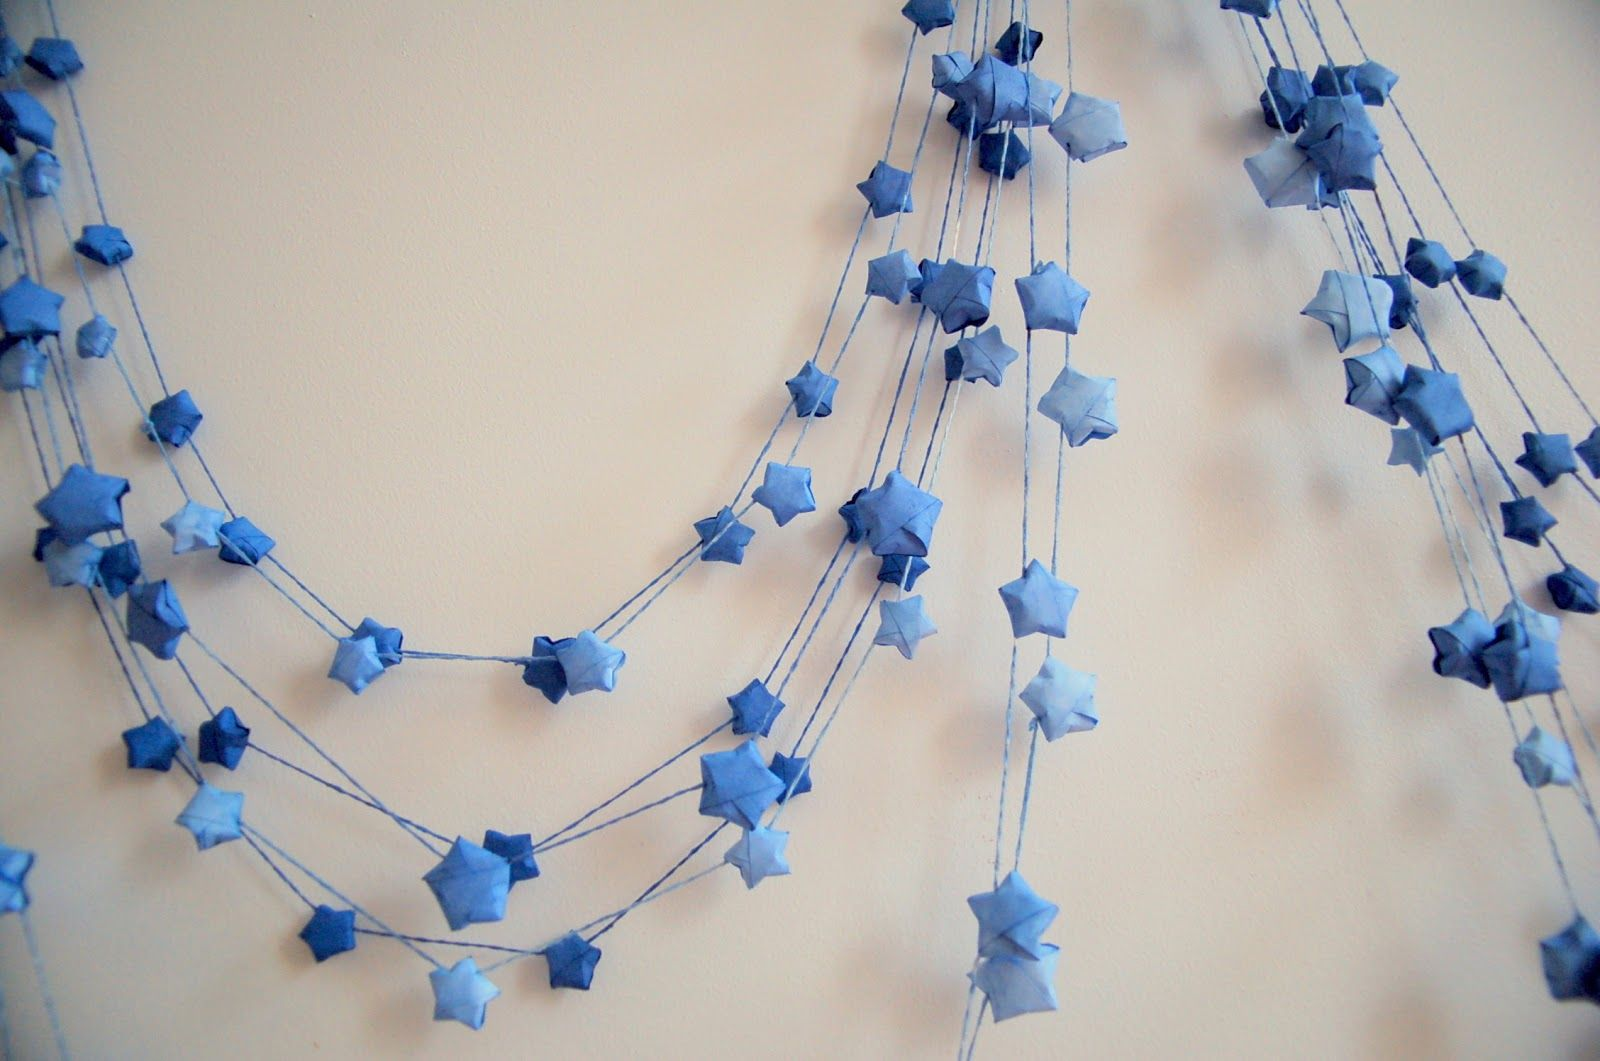 origami lucky star garland | Party time! | Pinterest ... - photo#24